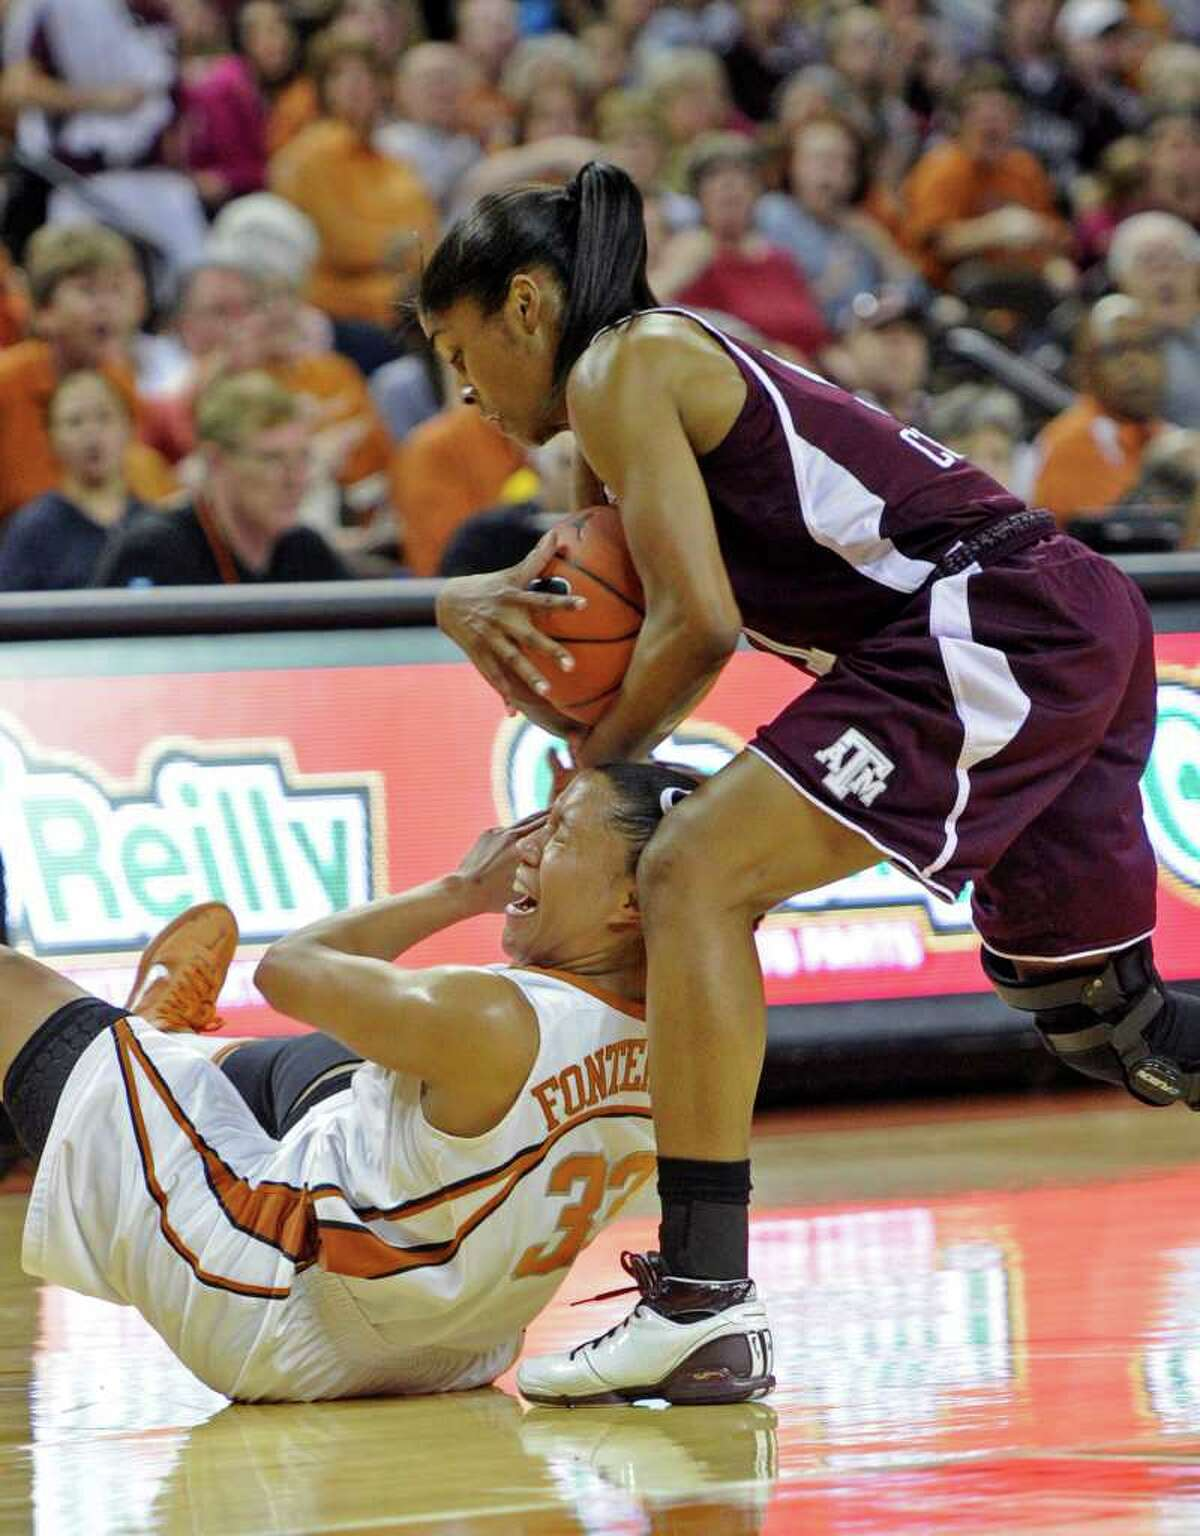 Texas A&M guard Sydney Colson, standing, took the ball away from Texas guard Ashleigh Fontenette, below, during the second half of an NCAA college basketball game Sunday, Feb. 27, 2011, in Austin, Texas. Texas A&M won 68-65.